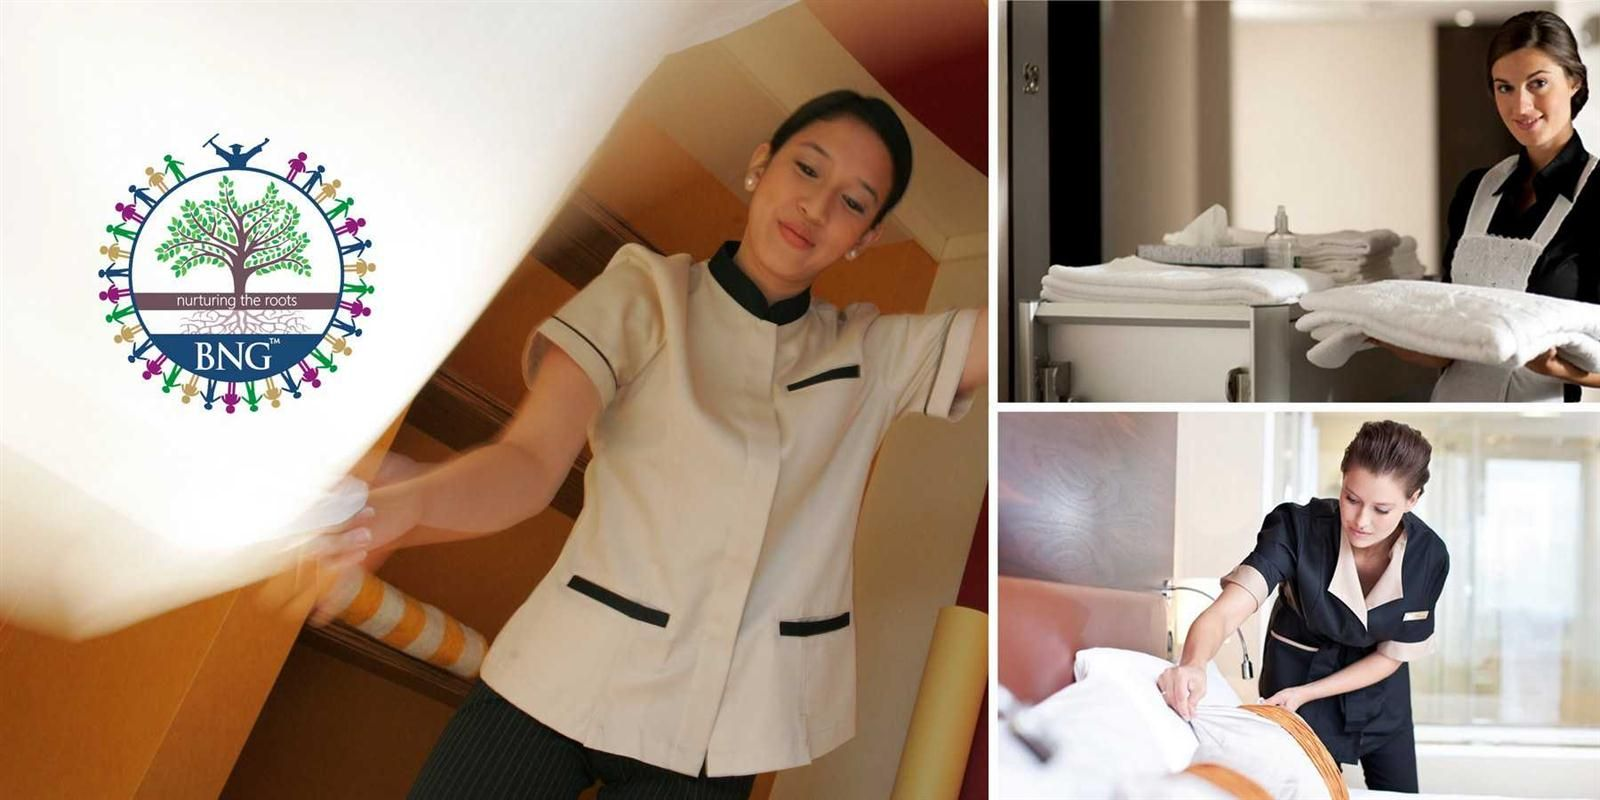 Hotel Housekeeping staffs can be divided into 3 categories